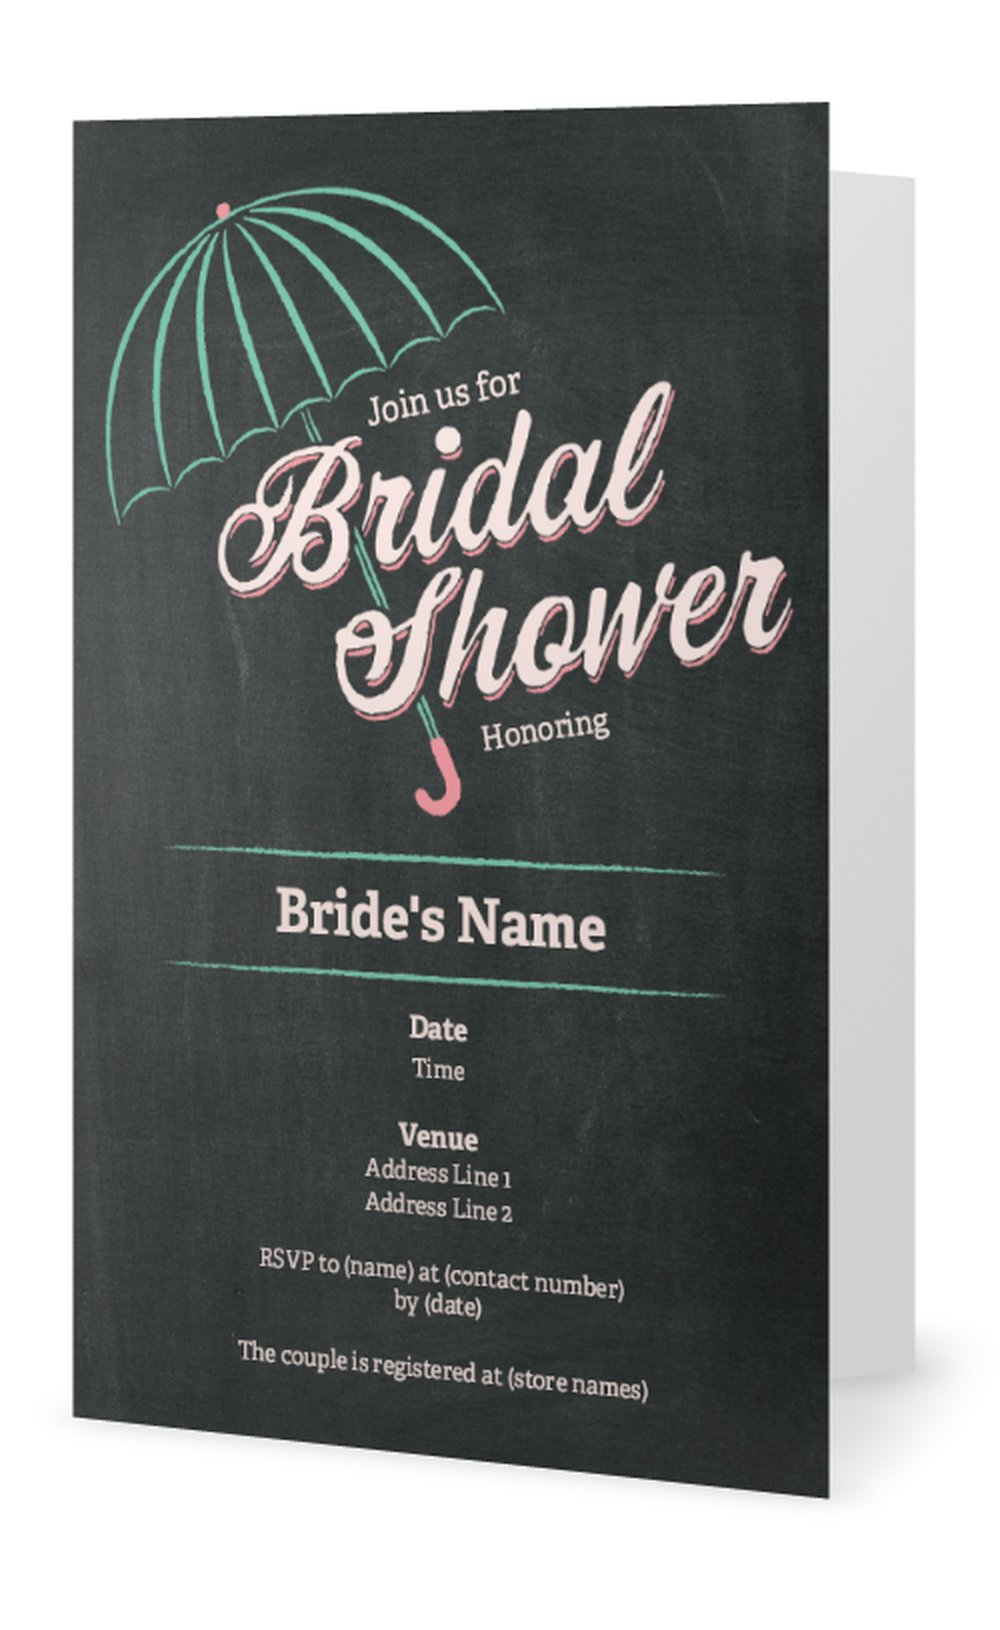 Vista Print Bridal Shower Invitations for your inspiration to make invitation template look beautiful